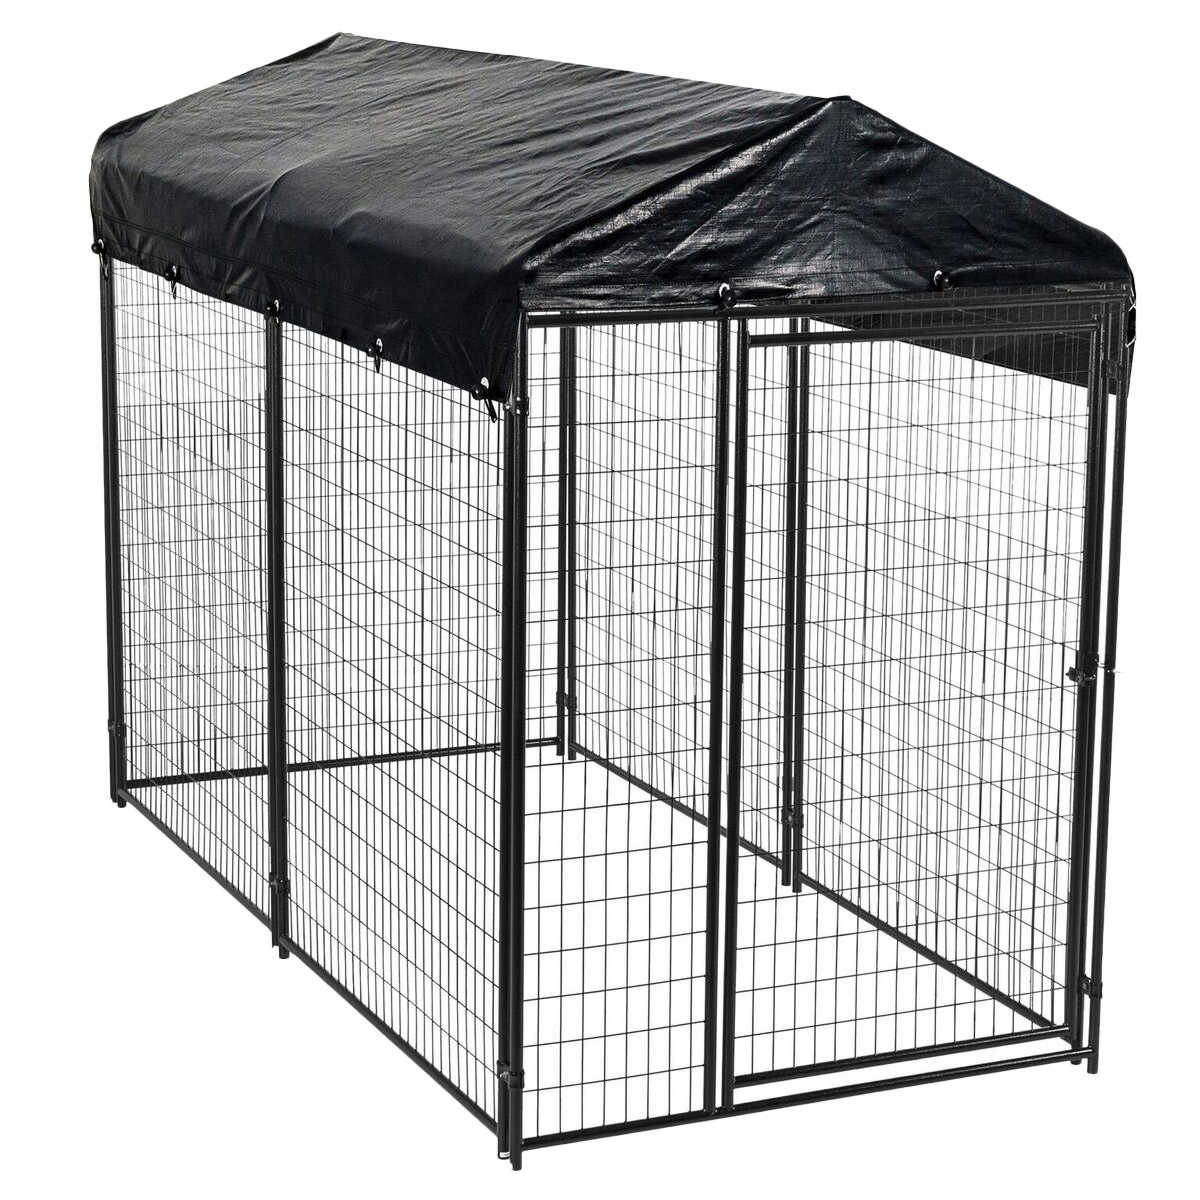 Lucky Dog Black Modular Welded Wire Kennel With Cover 10 L X 5 W